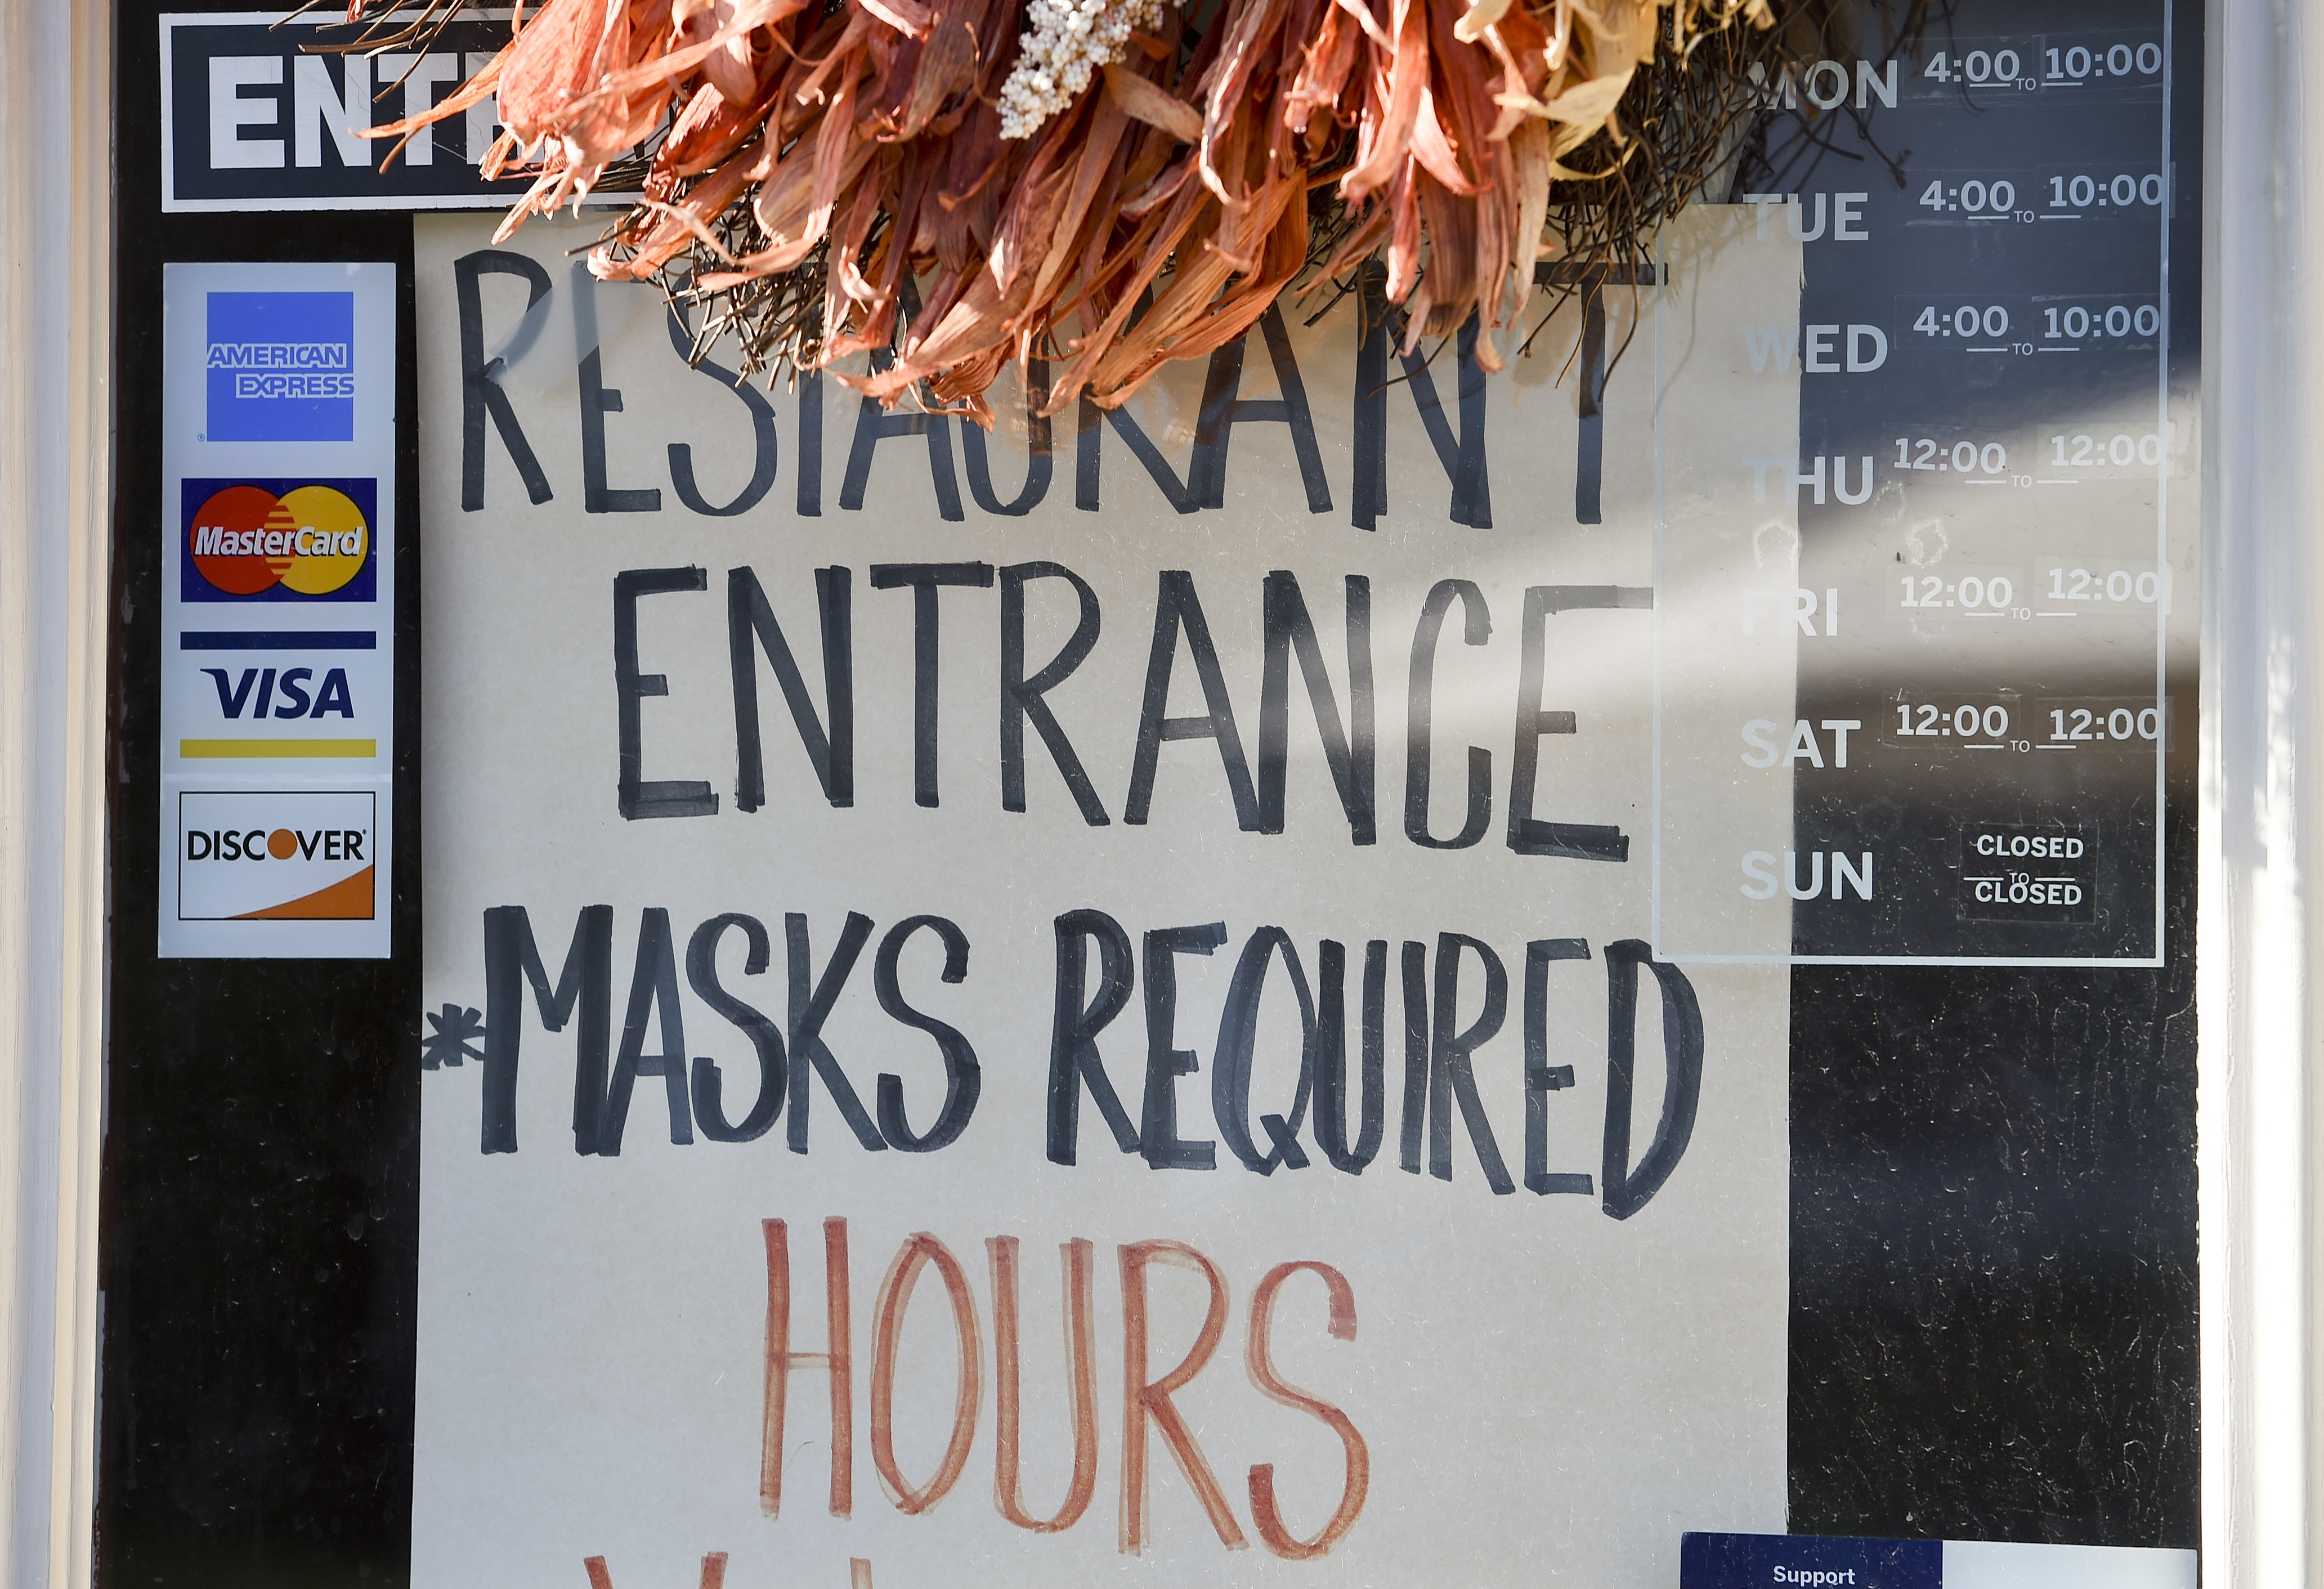 a sign on a door that says restaurant entrance masks required and hours